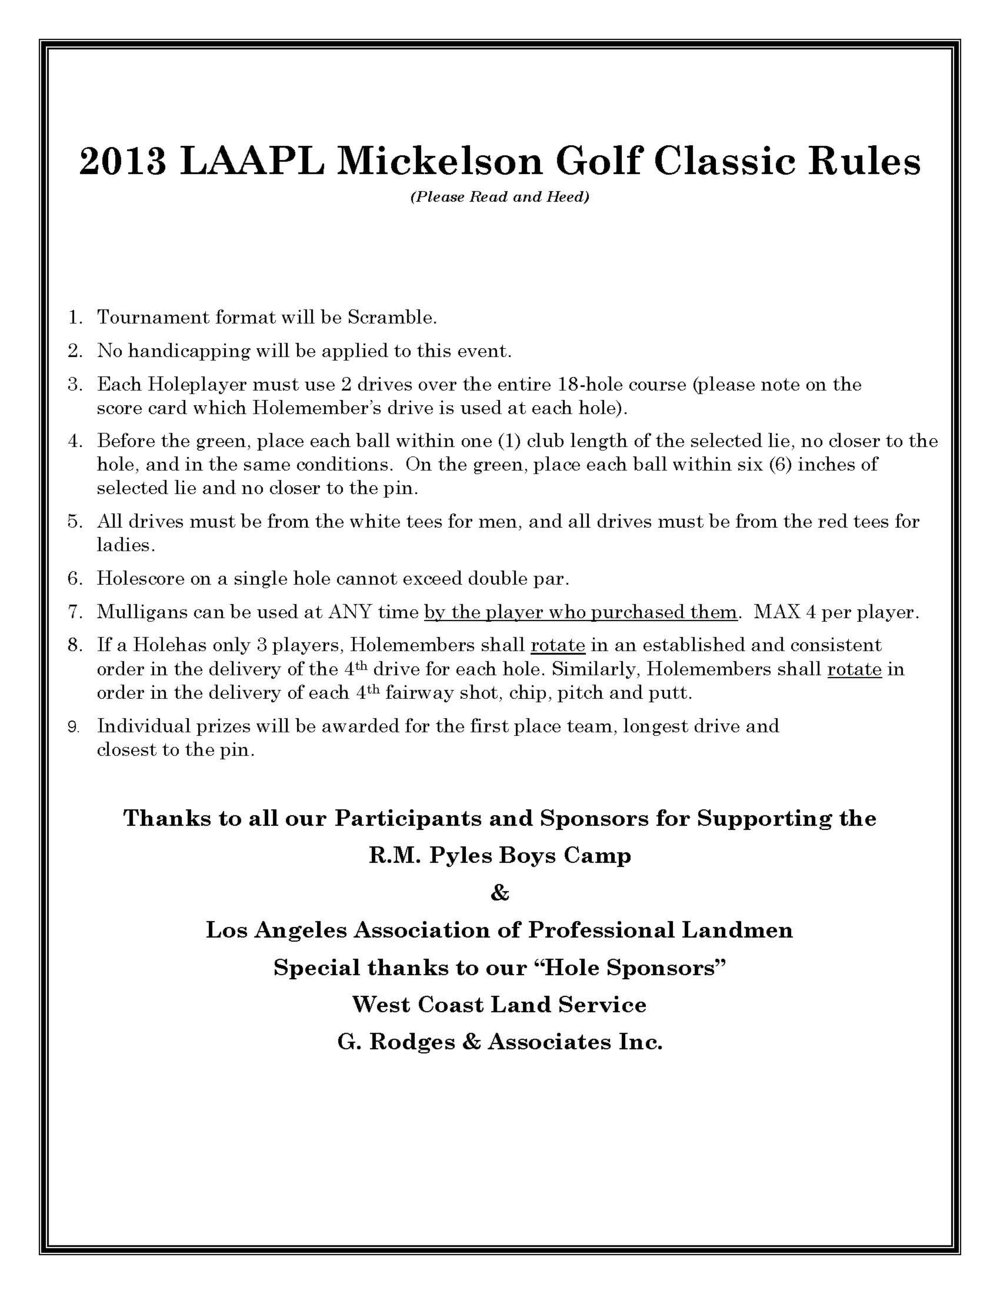 Mickelson Golf Aug 2nd 2013 Program_Page_17.jpg